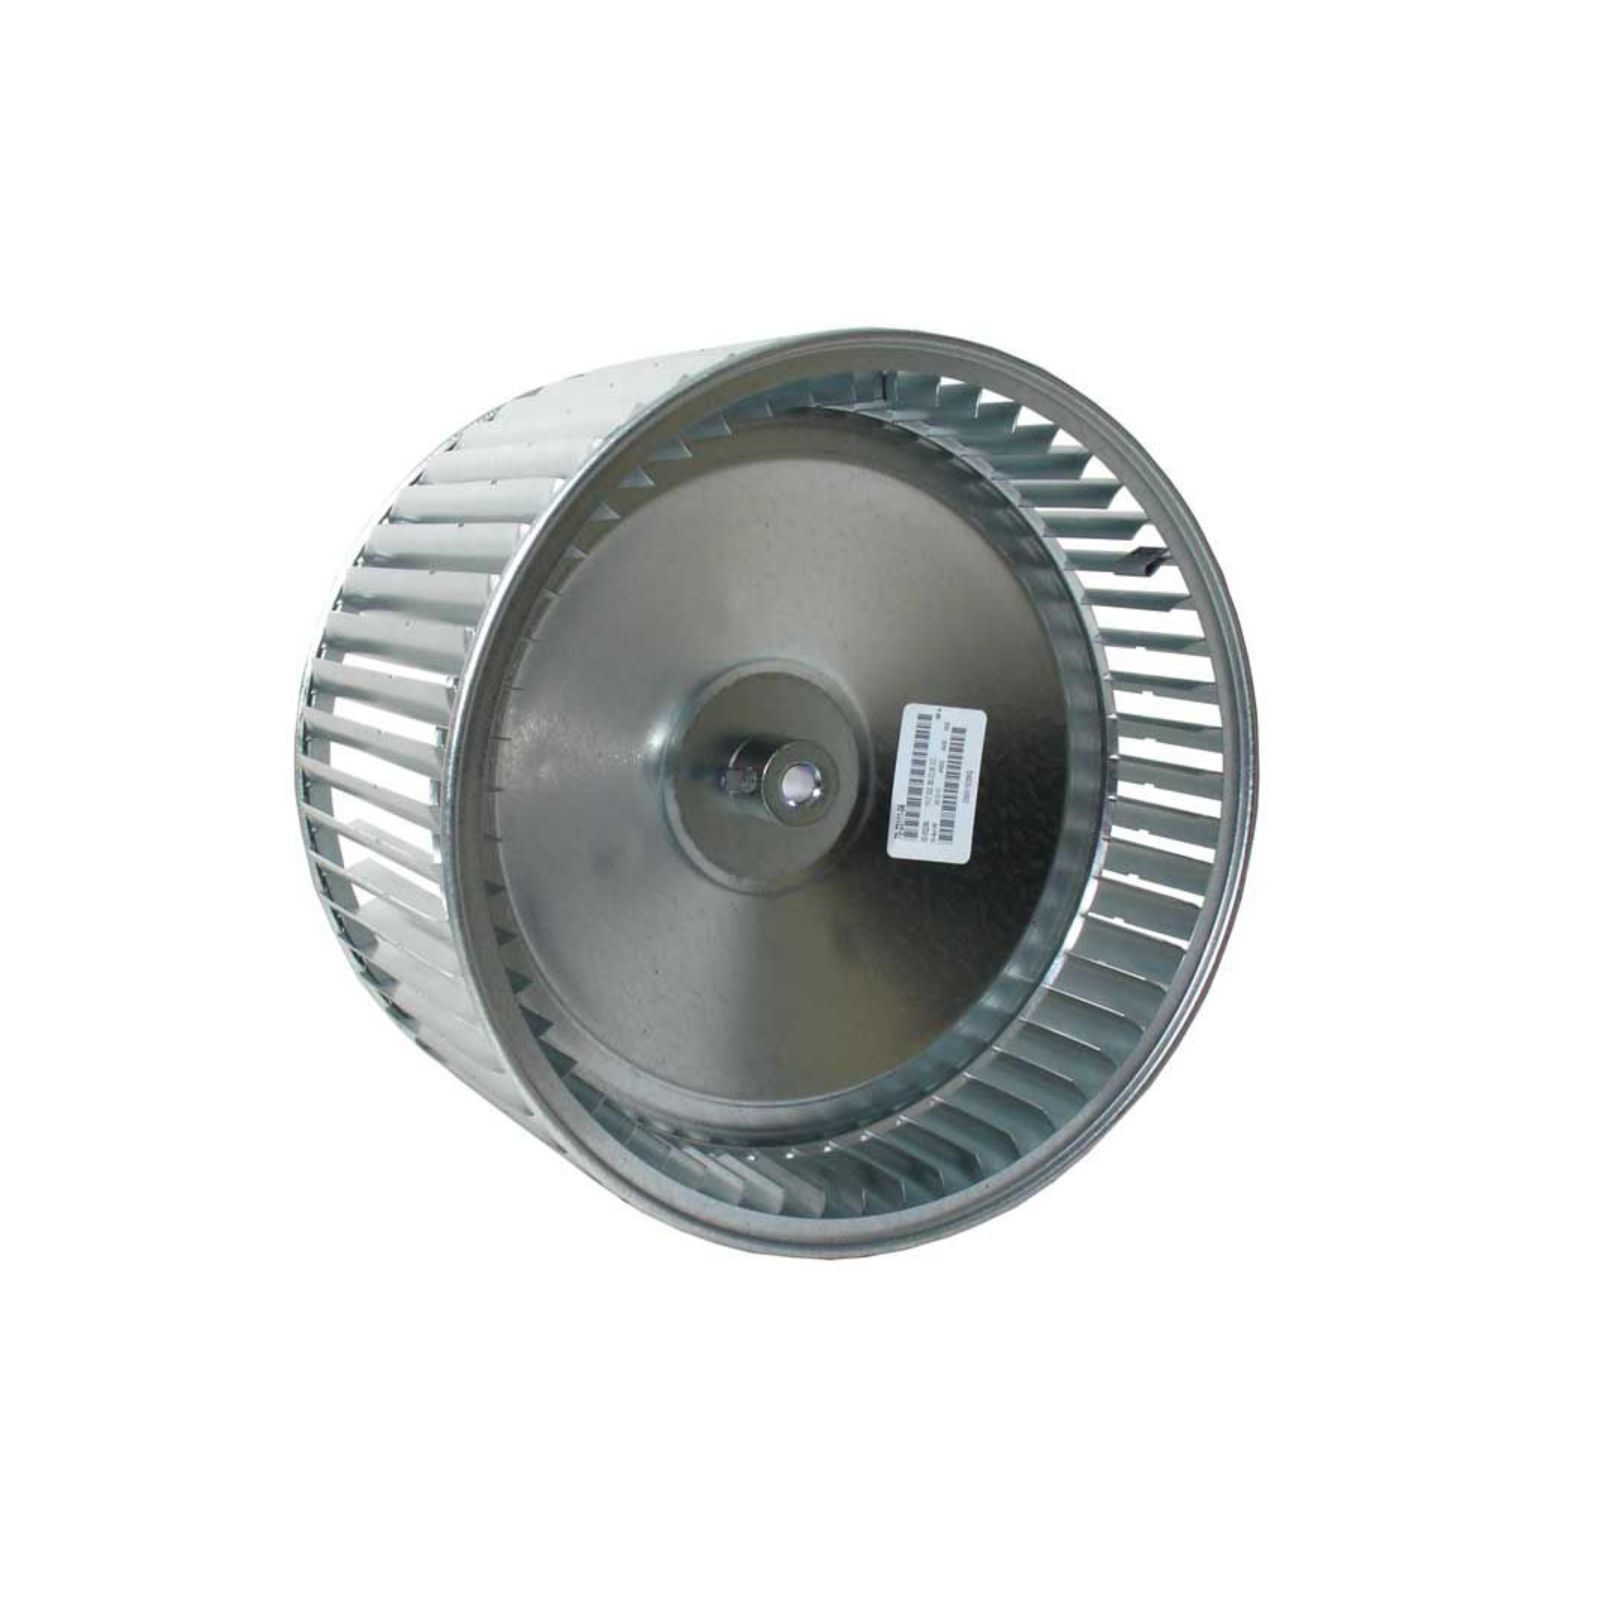 "PROTECH 70-23111-05 - Blower Wheel, 11"" x 7"", CW"